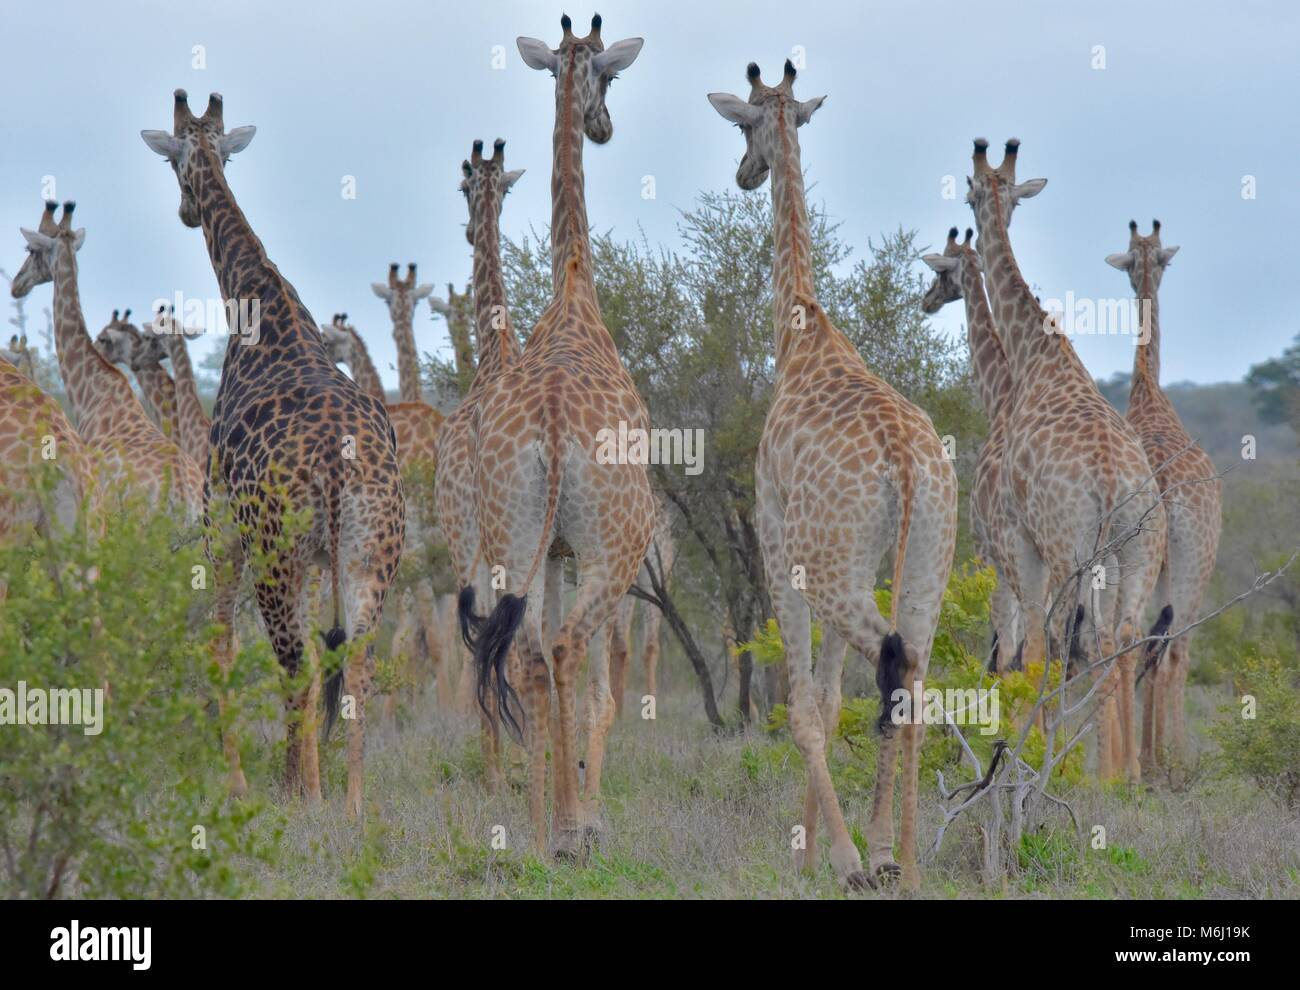 Kruger Park, South Africa. A wildlife and bird paradise. Herd of giraffe from behind. Stock Photo